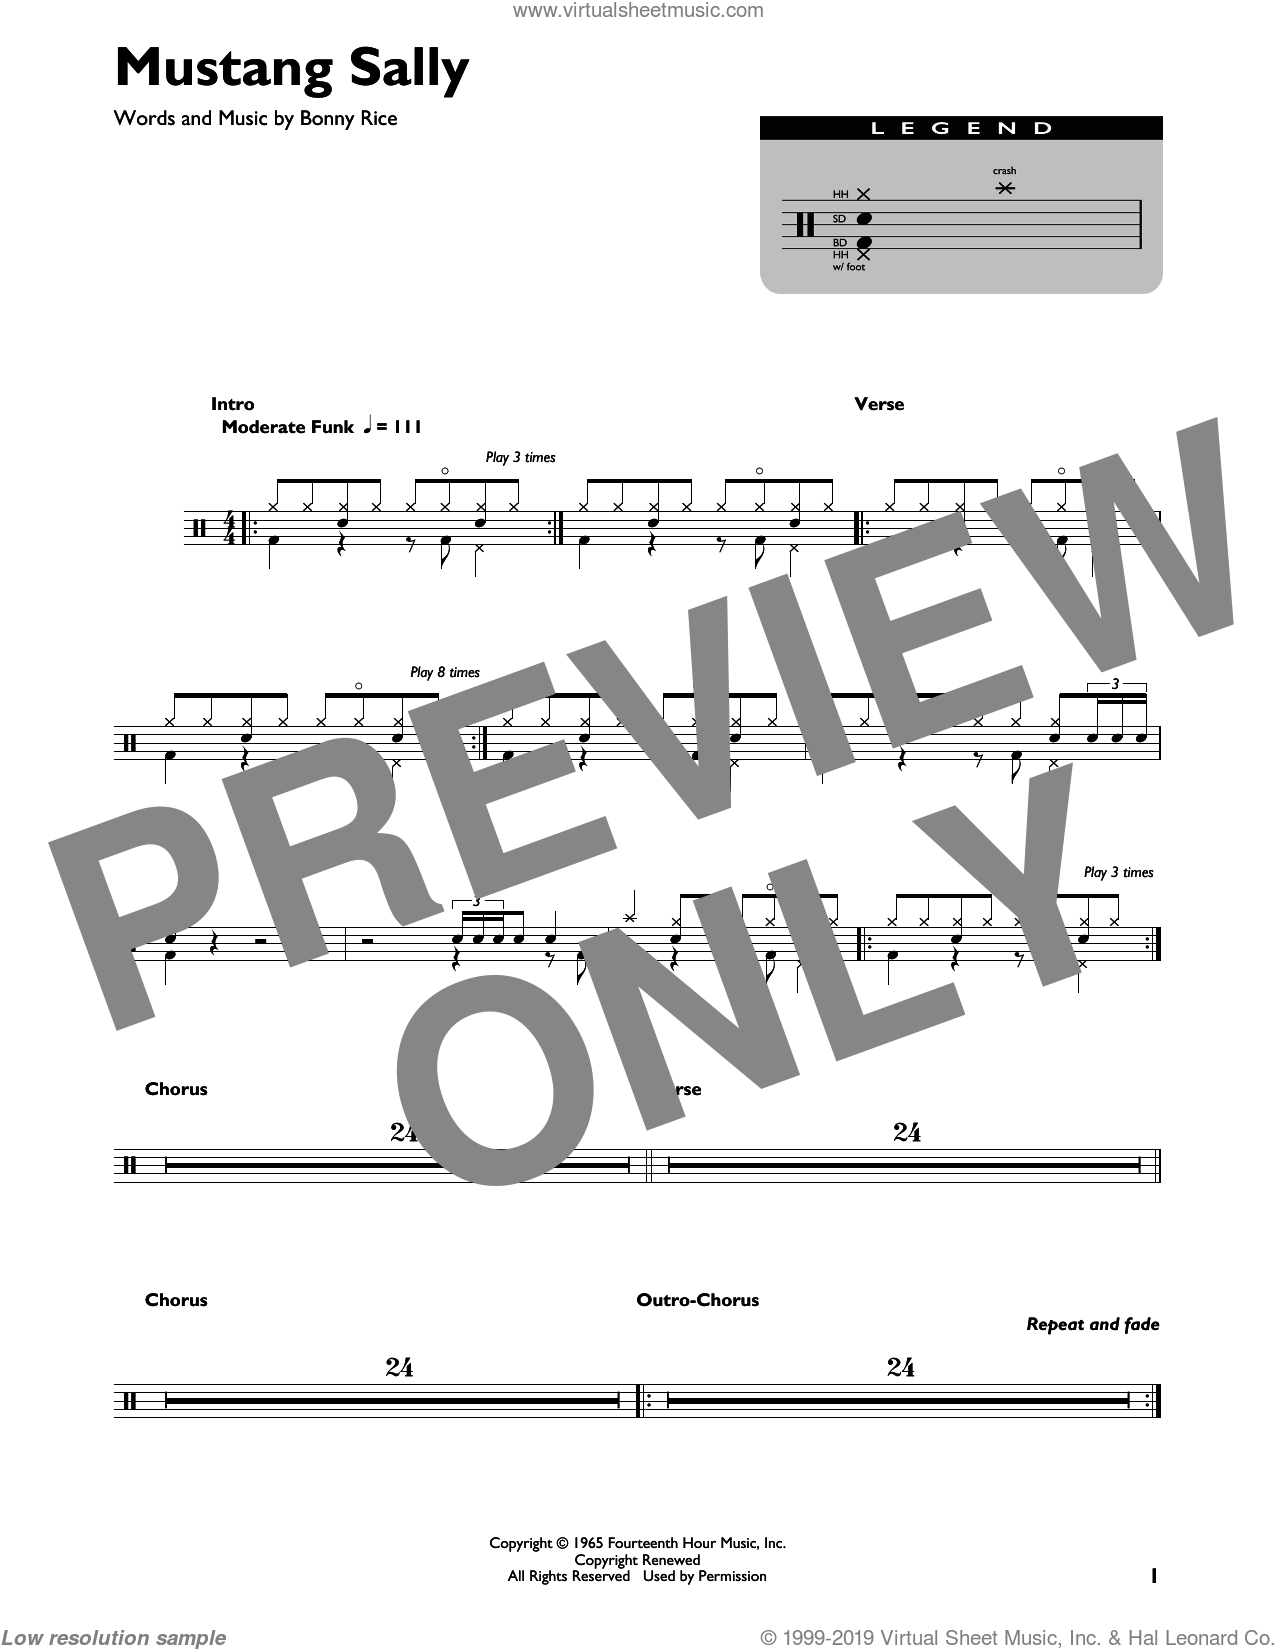 Mustang Sally sheet music for drums by Wilson Pickett and Bonny Rice, intermediate skill level